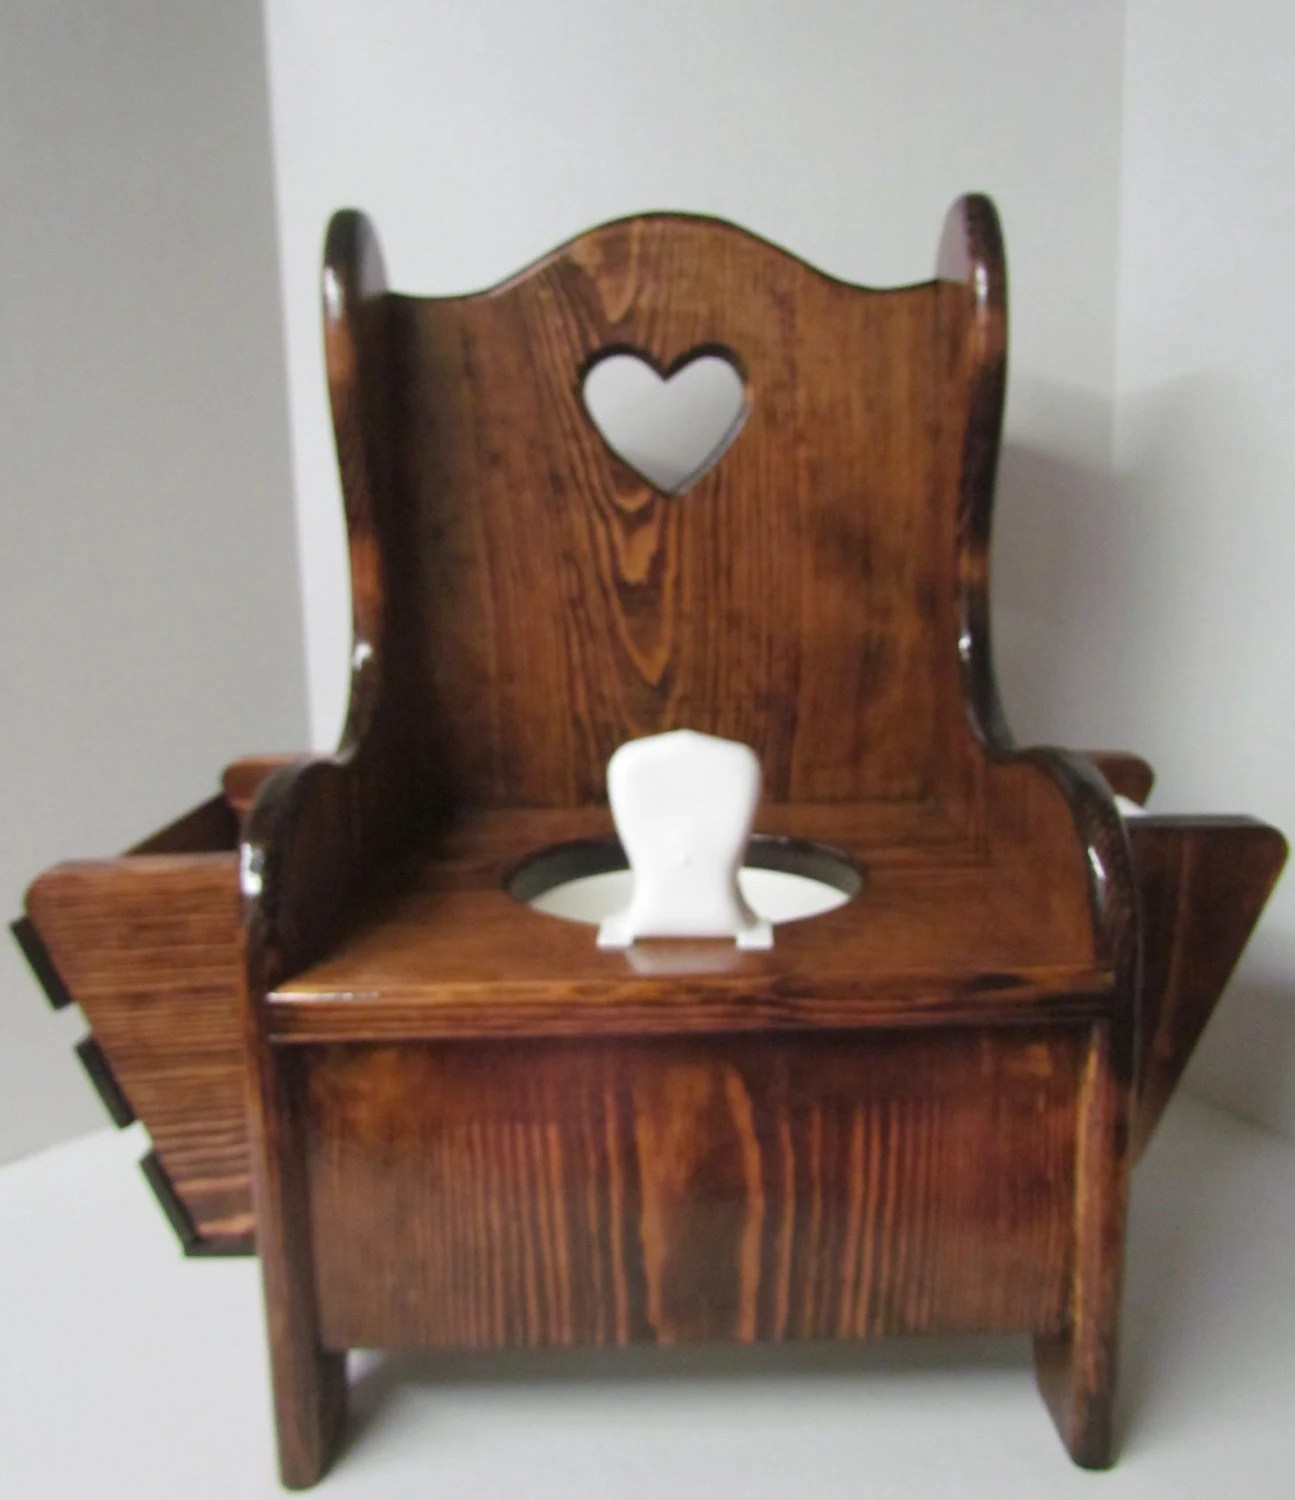 wooden potty training chair red adirondack chairs plastic with heart cut